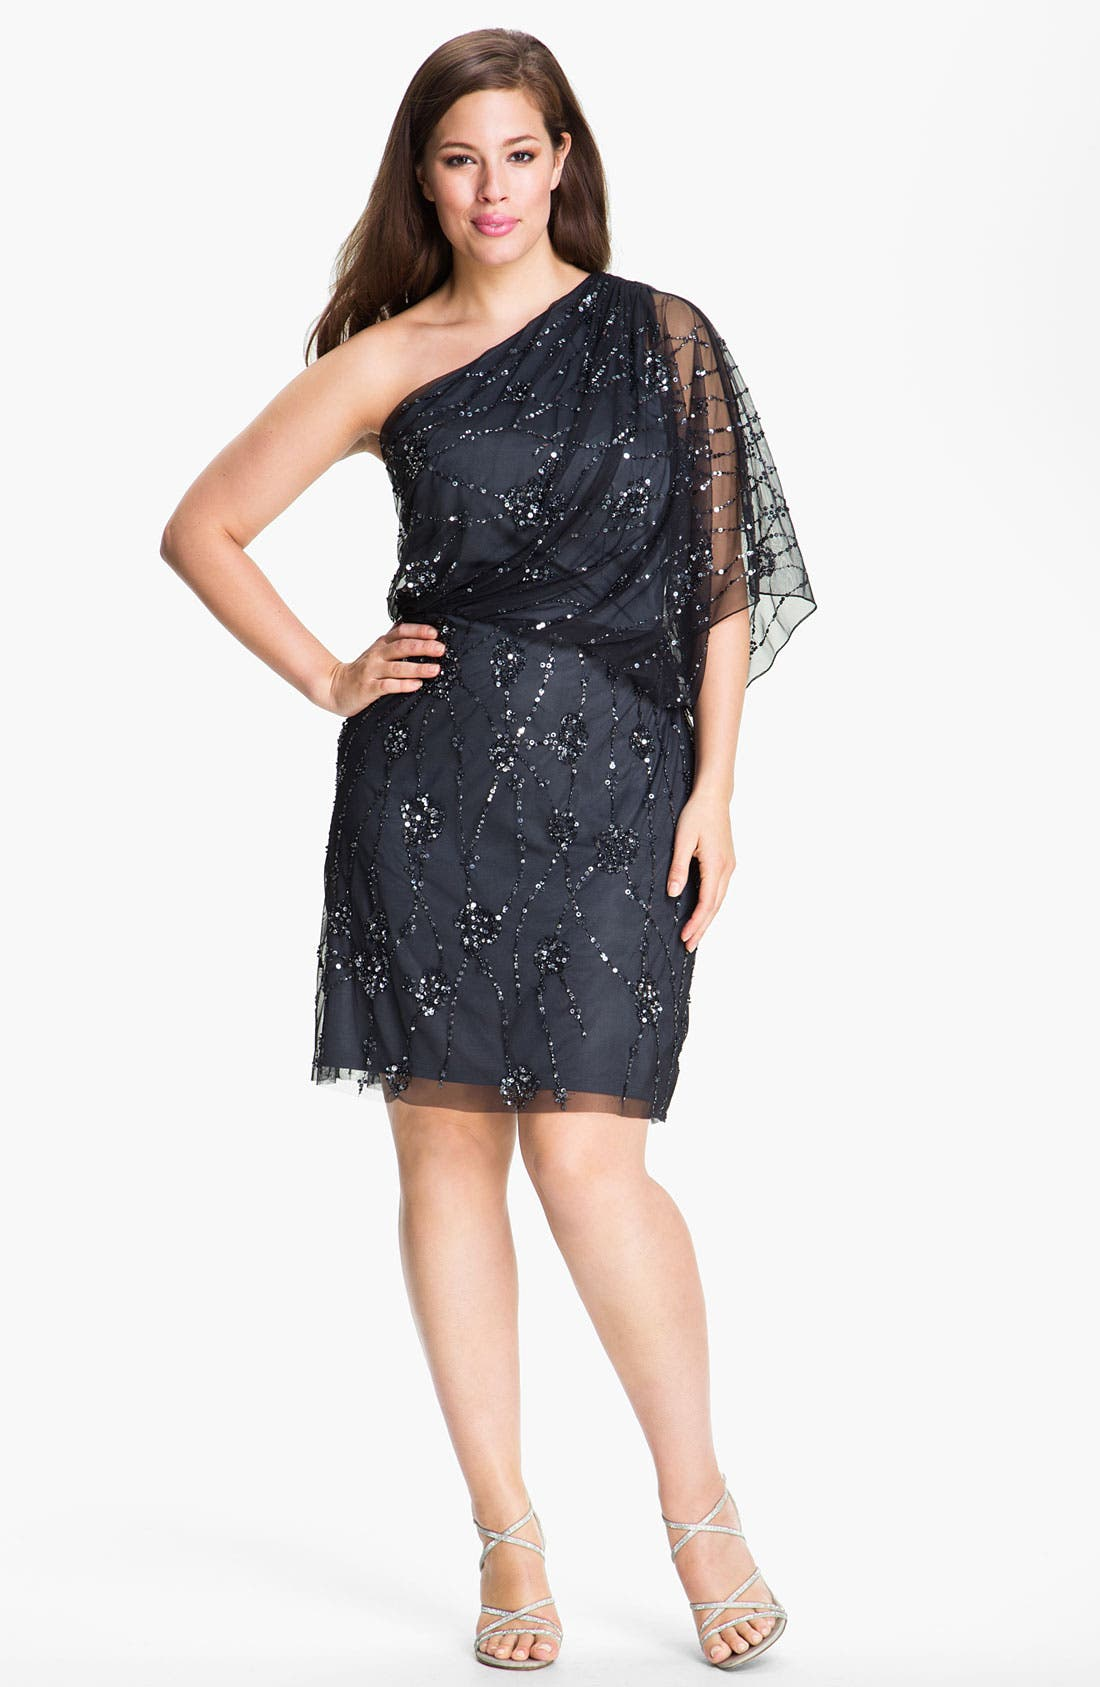 Alternate Image 1 Selected - Adrianna Papell Sequin Mesh Overlaid Blouson Dress (Plus)